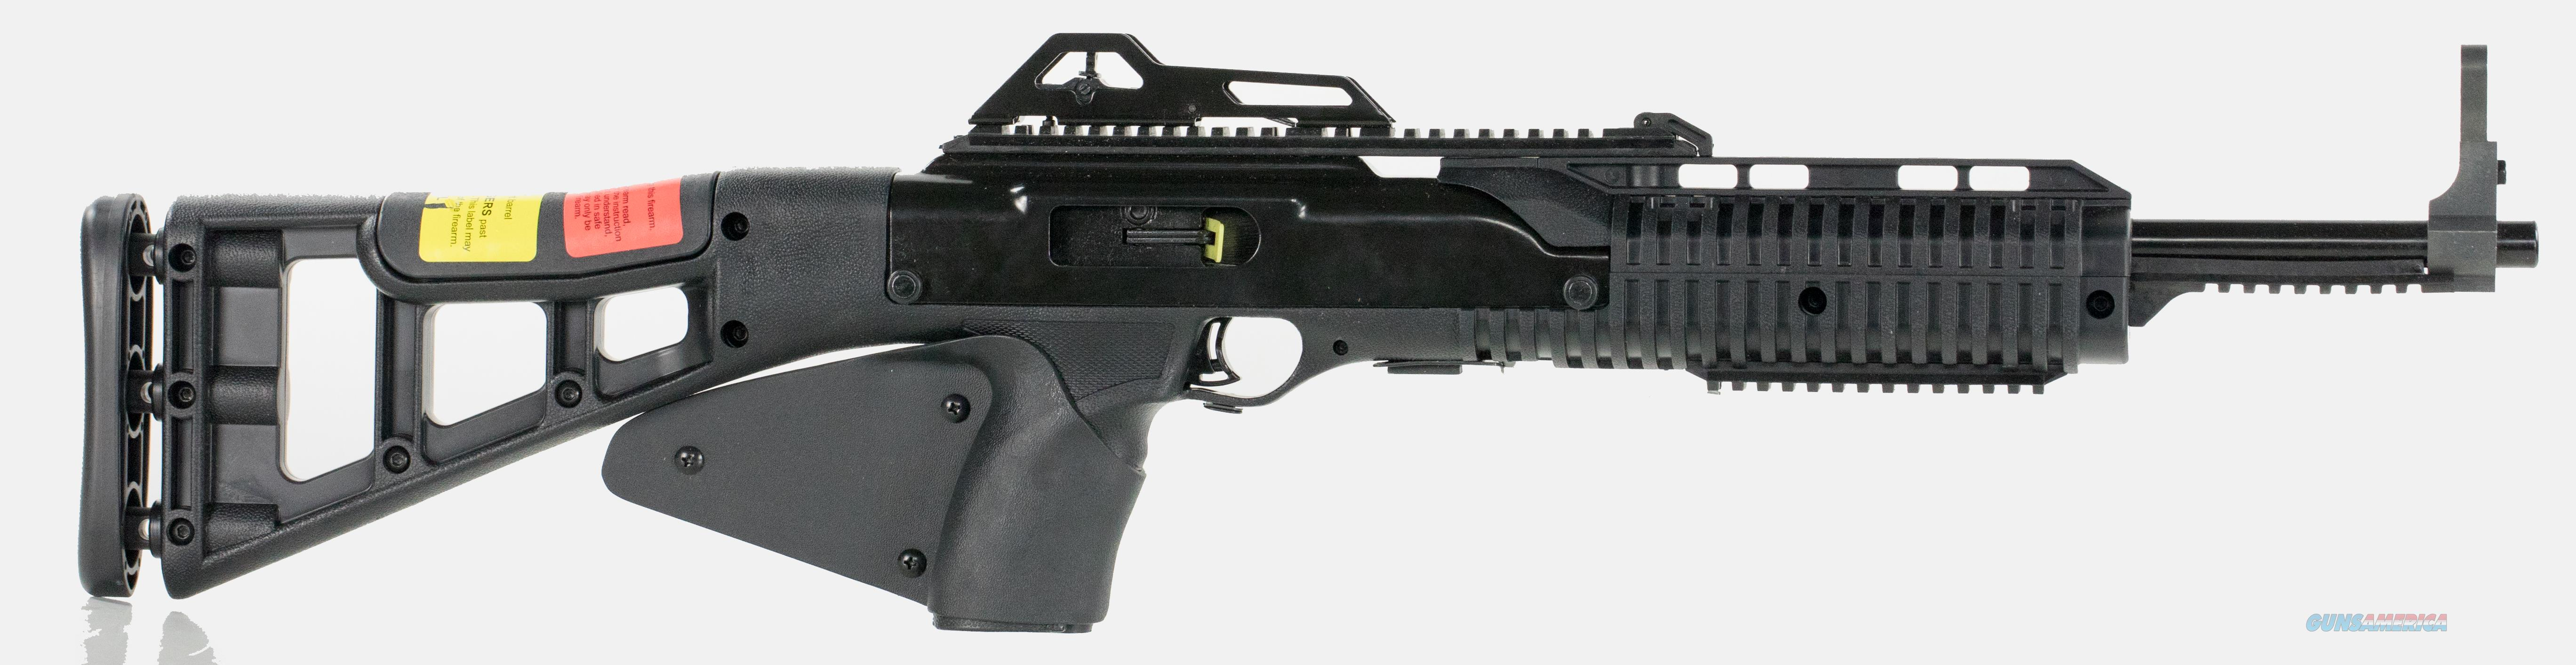 "LDB Supply 995TSCA 995TS Carbine *CA Compliant* Semi-Automatic 9mm 16.5"" 10+1 Synthetic Black Stk  Guns > Rifles > Hi Point Rifles"